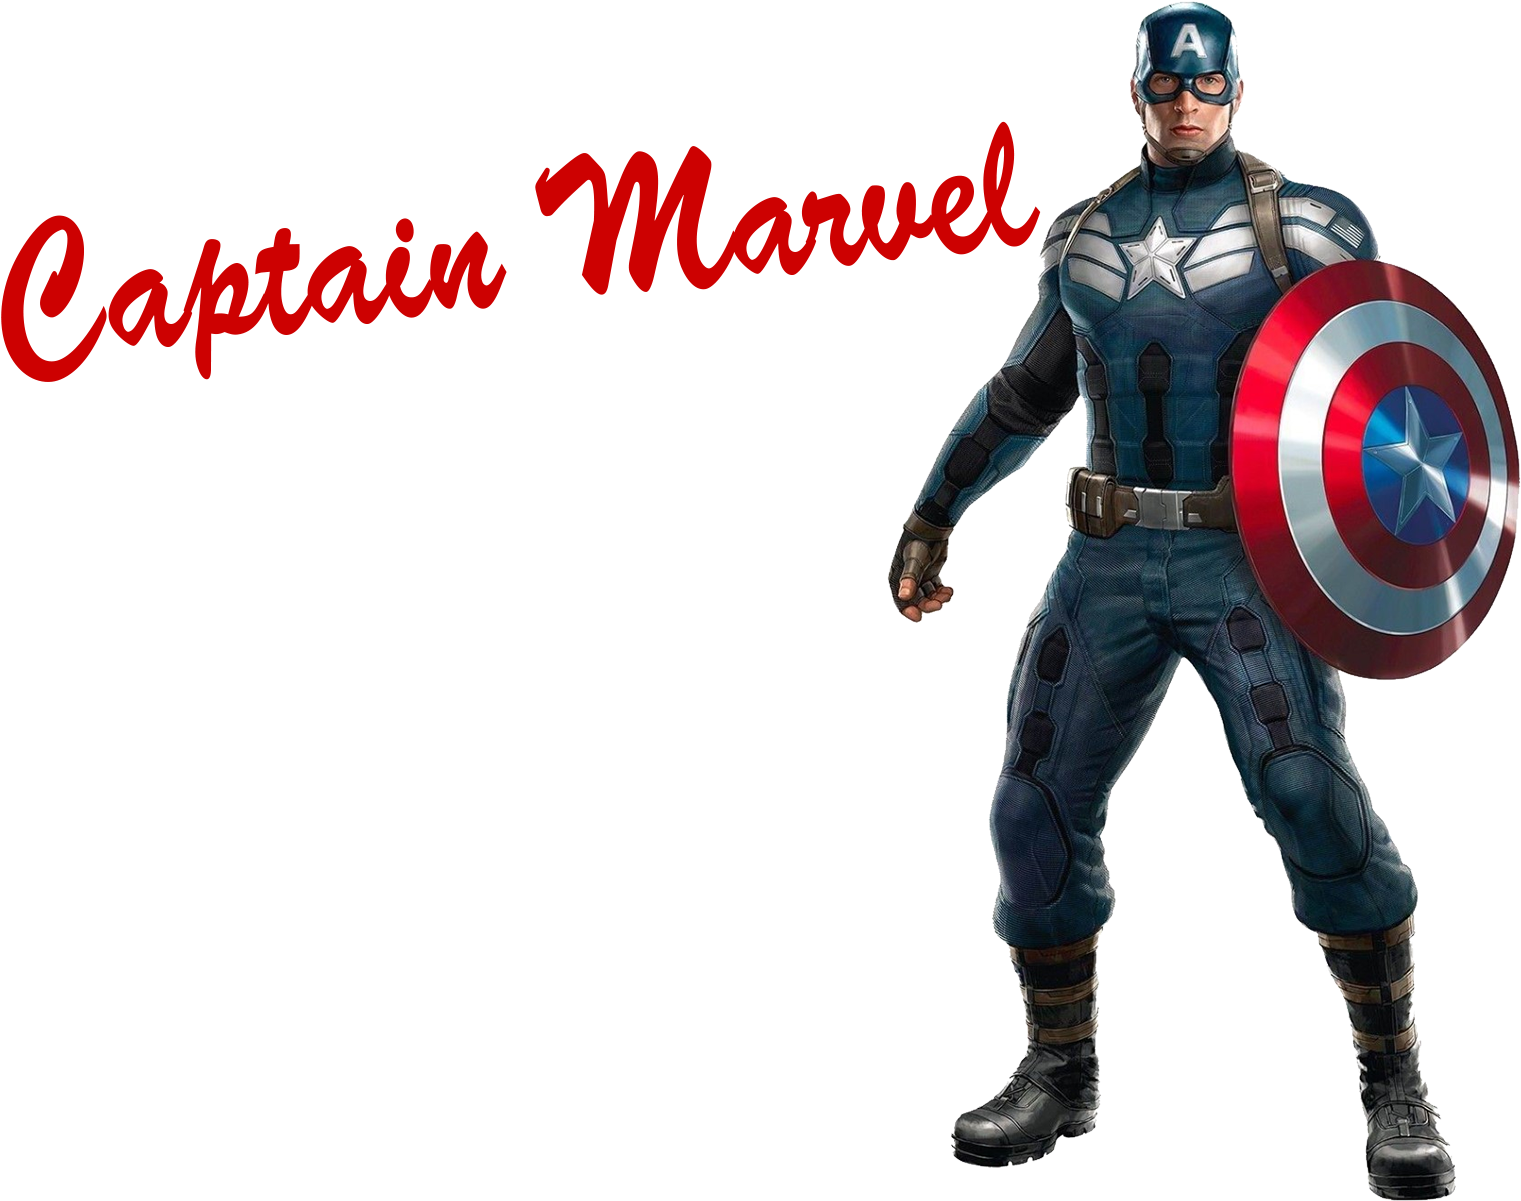 Captain america the winter soldier logo png. Download stand up image